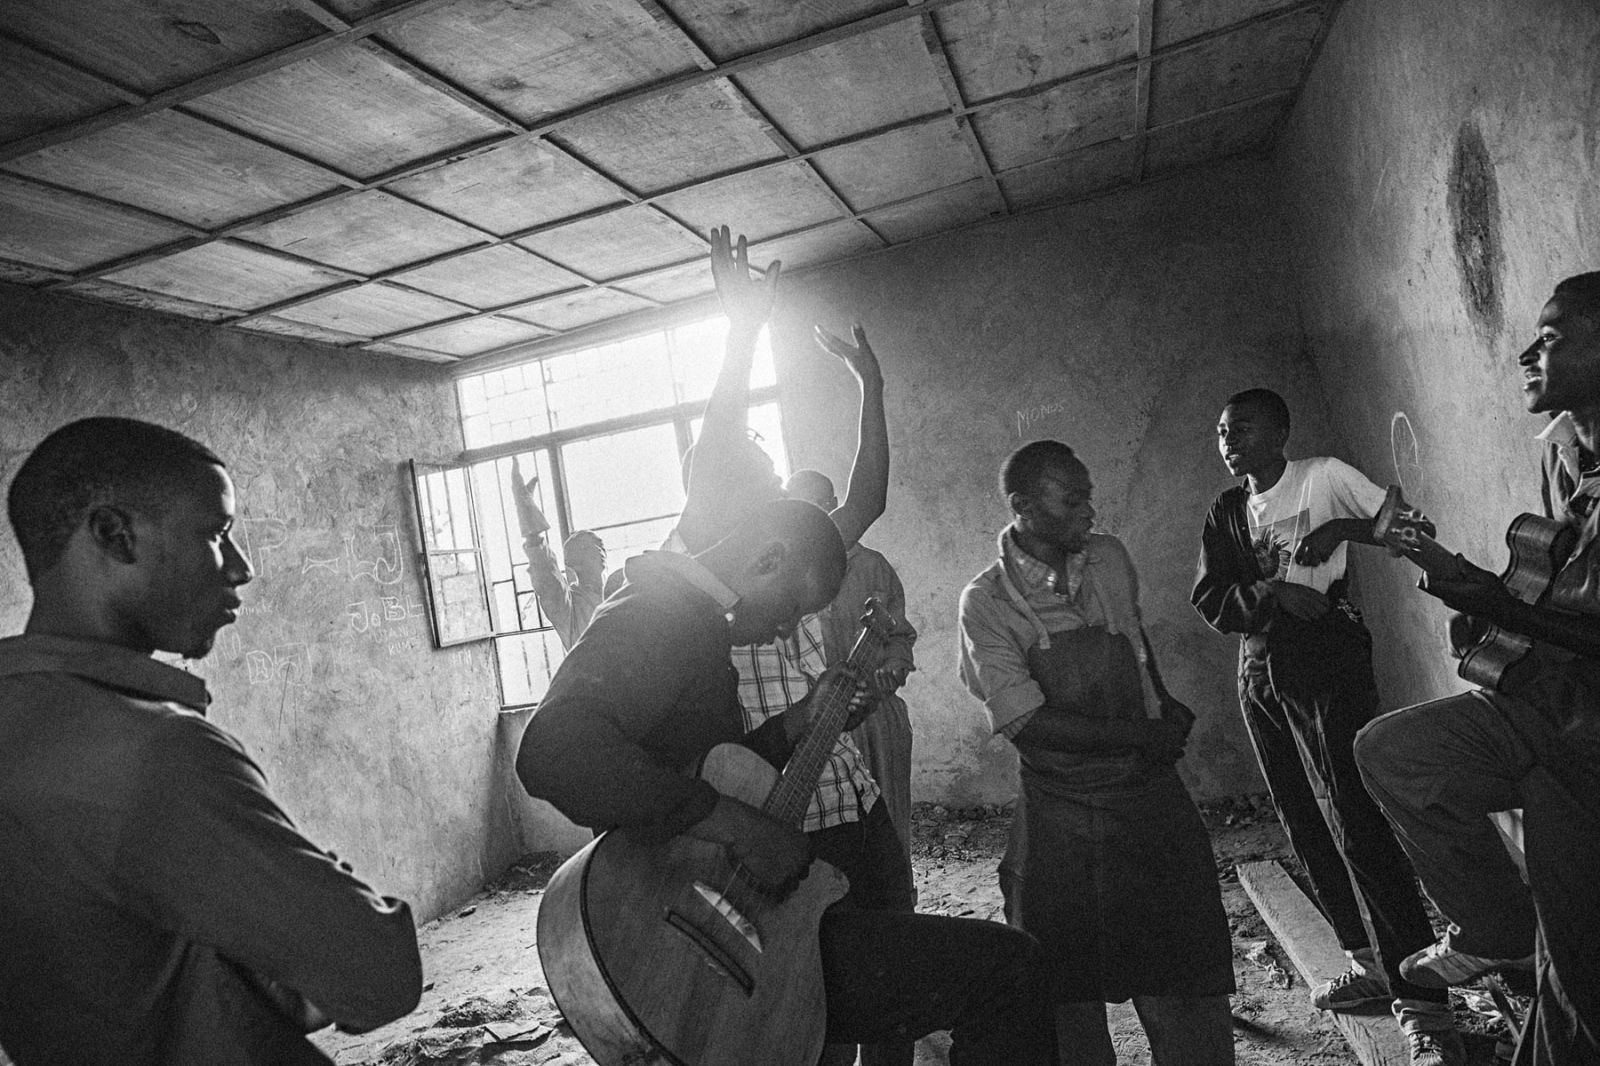 Young men and boys play an impromptu session of music, singing in an unfinished room as a part of their masonry project at the ETN Center in Goma, Eastern Democratic Republic of Congo, on Friday, July 18, 2014. The ETN Center, funded partly by UNICEF, MONUSCO and also supported by Finnish Church Aid, is one of the few training centers where former child soldiers and street kids are given an opportunity to learn a skill that can then get them jobs. The skills they can acquire can allow them to become masons, carpenters, mechanics, hairdressers, or tailors. They also learn how to cook and have recreational activities at the center, and accept young adults from 16-22 years of age.